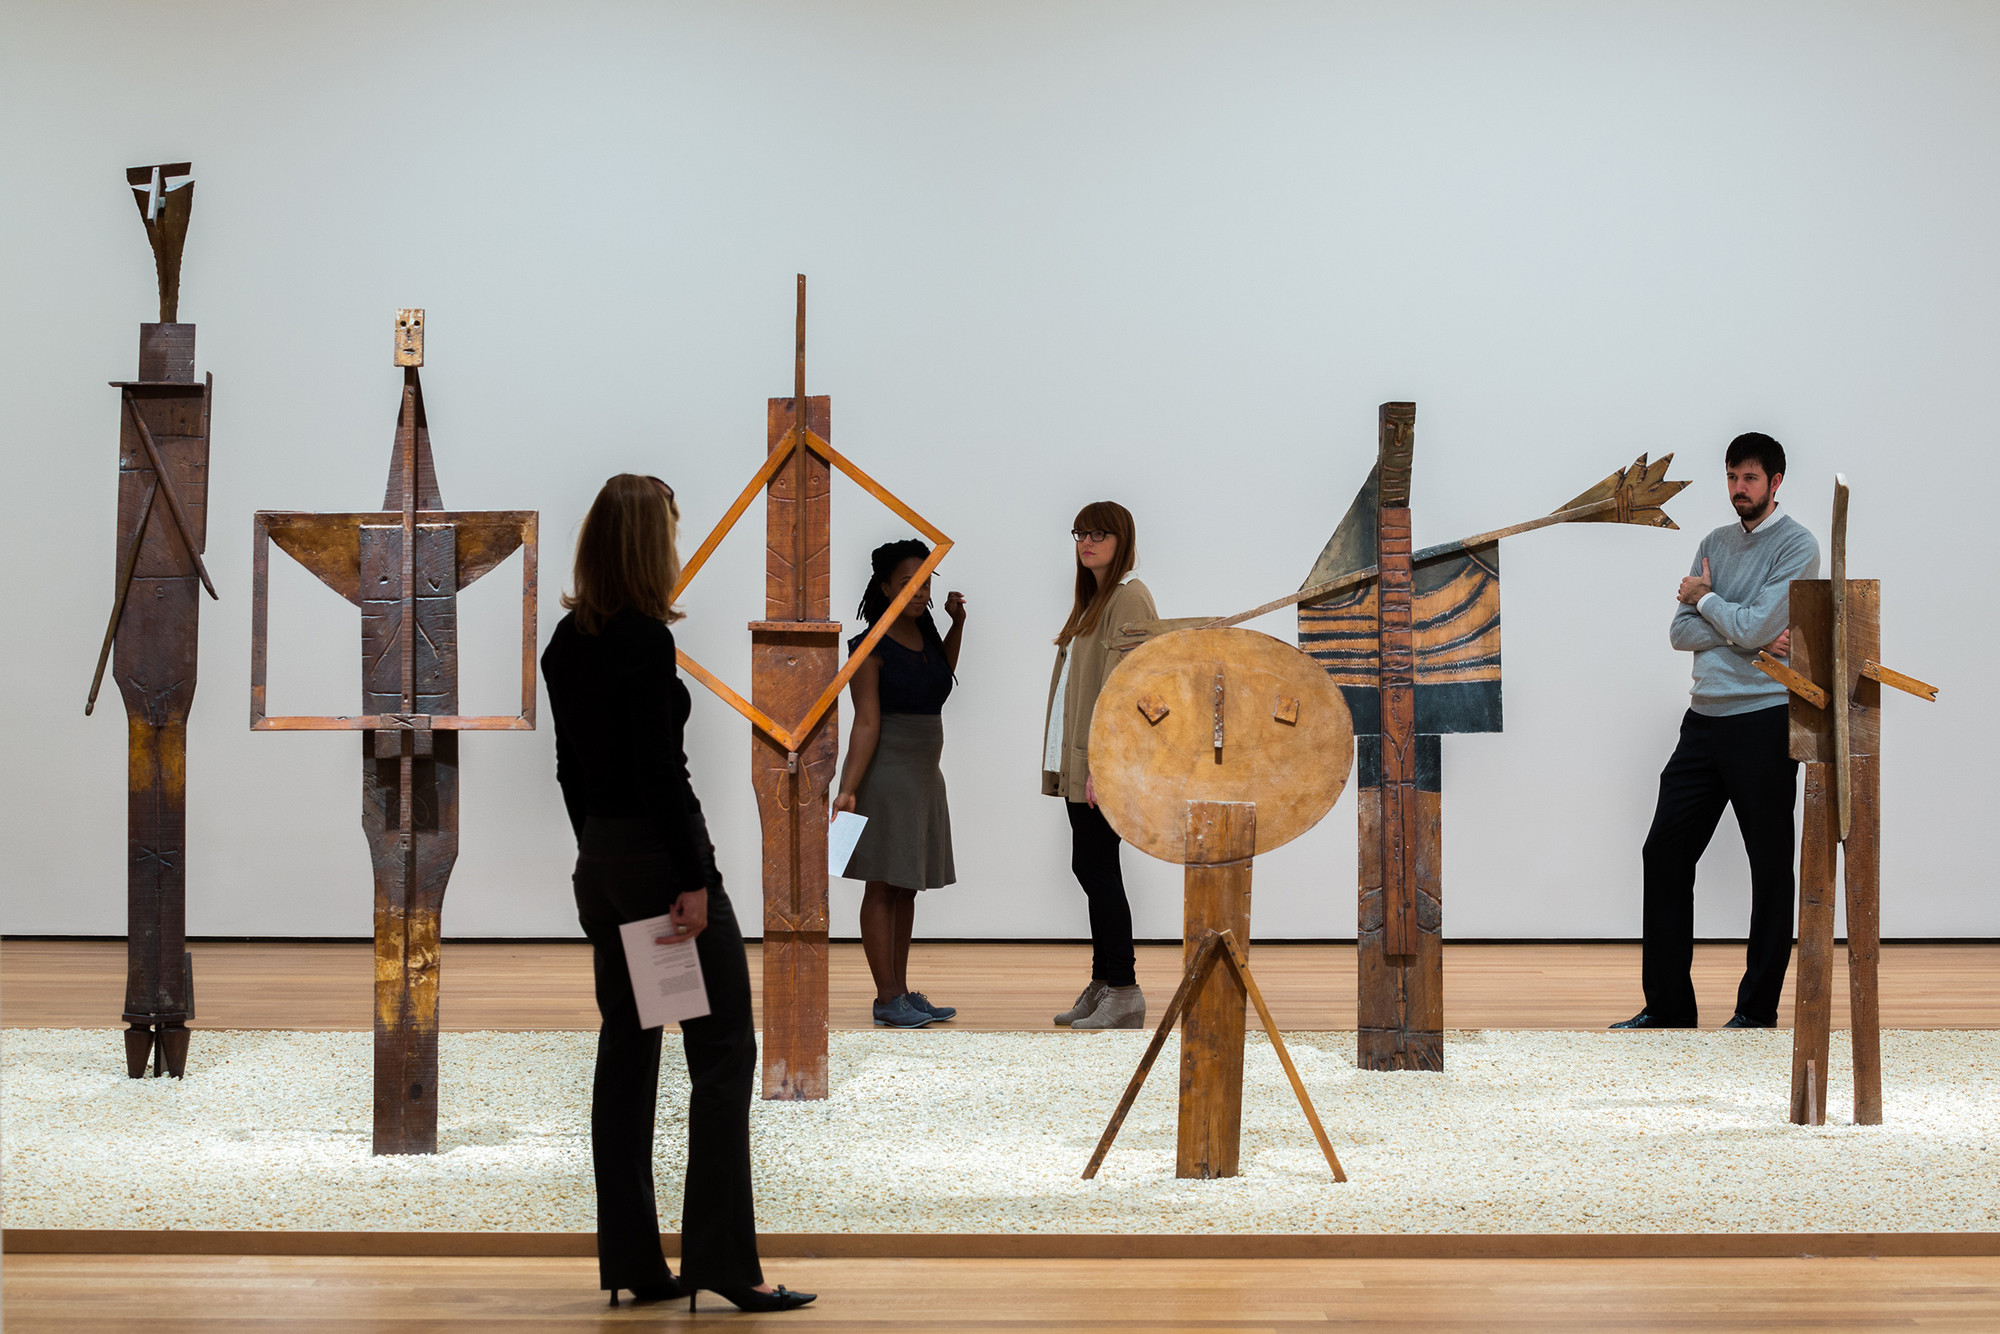 Installation view of Picasso Sculpture, The Museum of Modern Art, New York, September 14, 2015–February 7, 2016. © 2016 The Museum of Modern Art. Photo: Pablo Enriquez